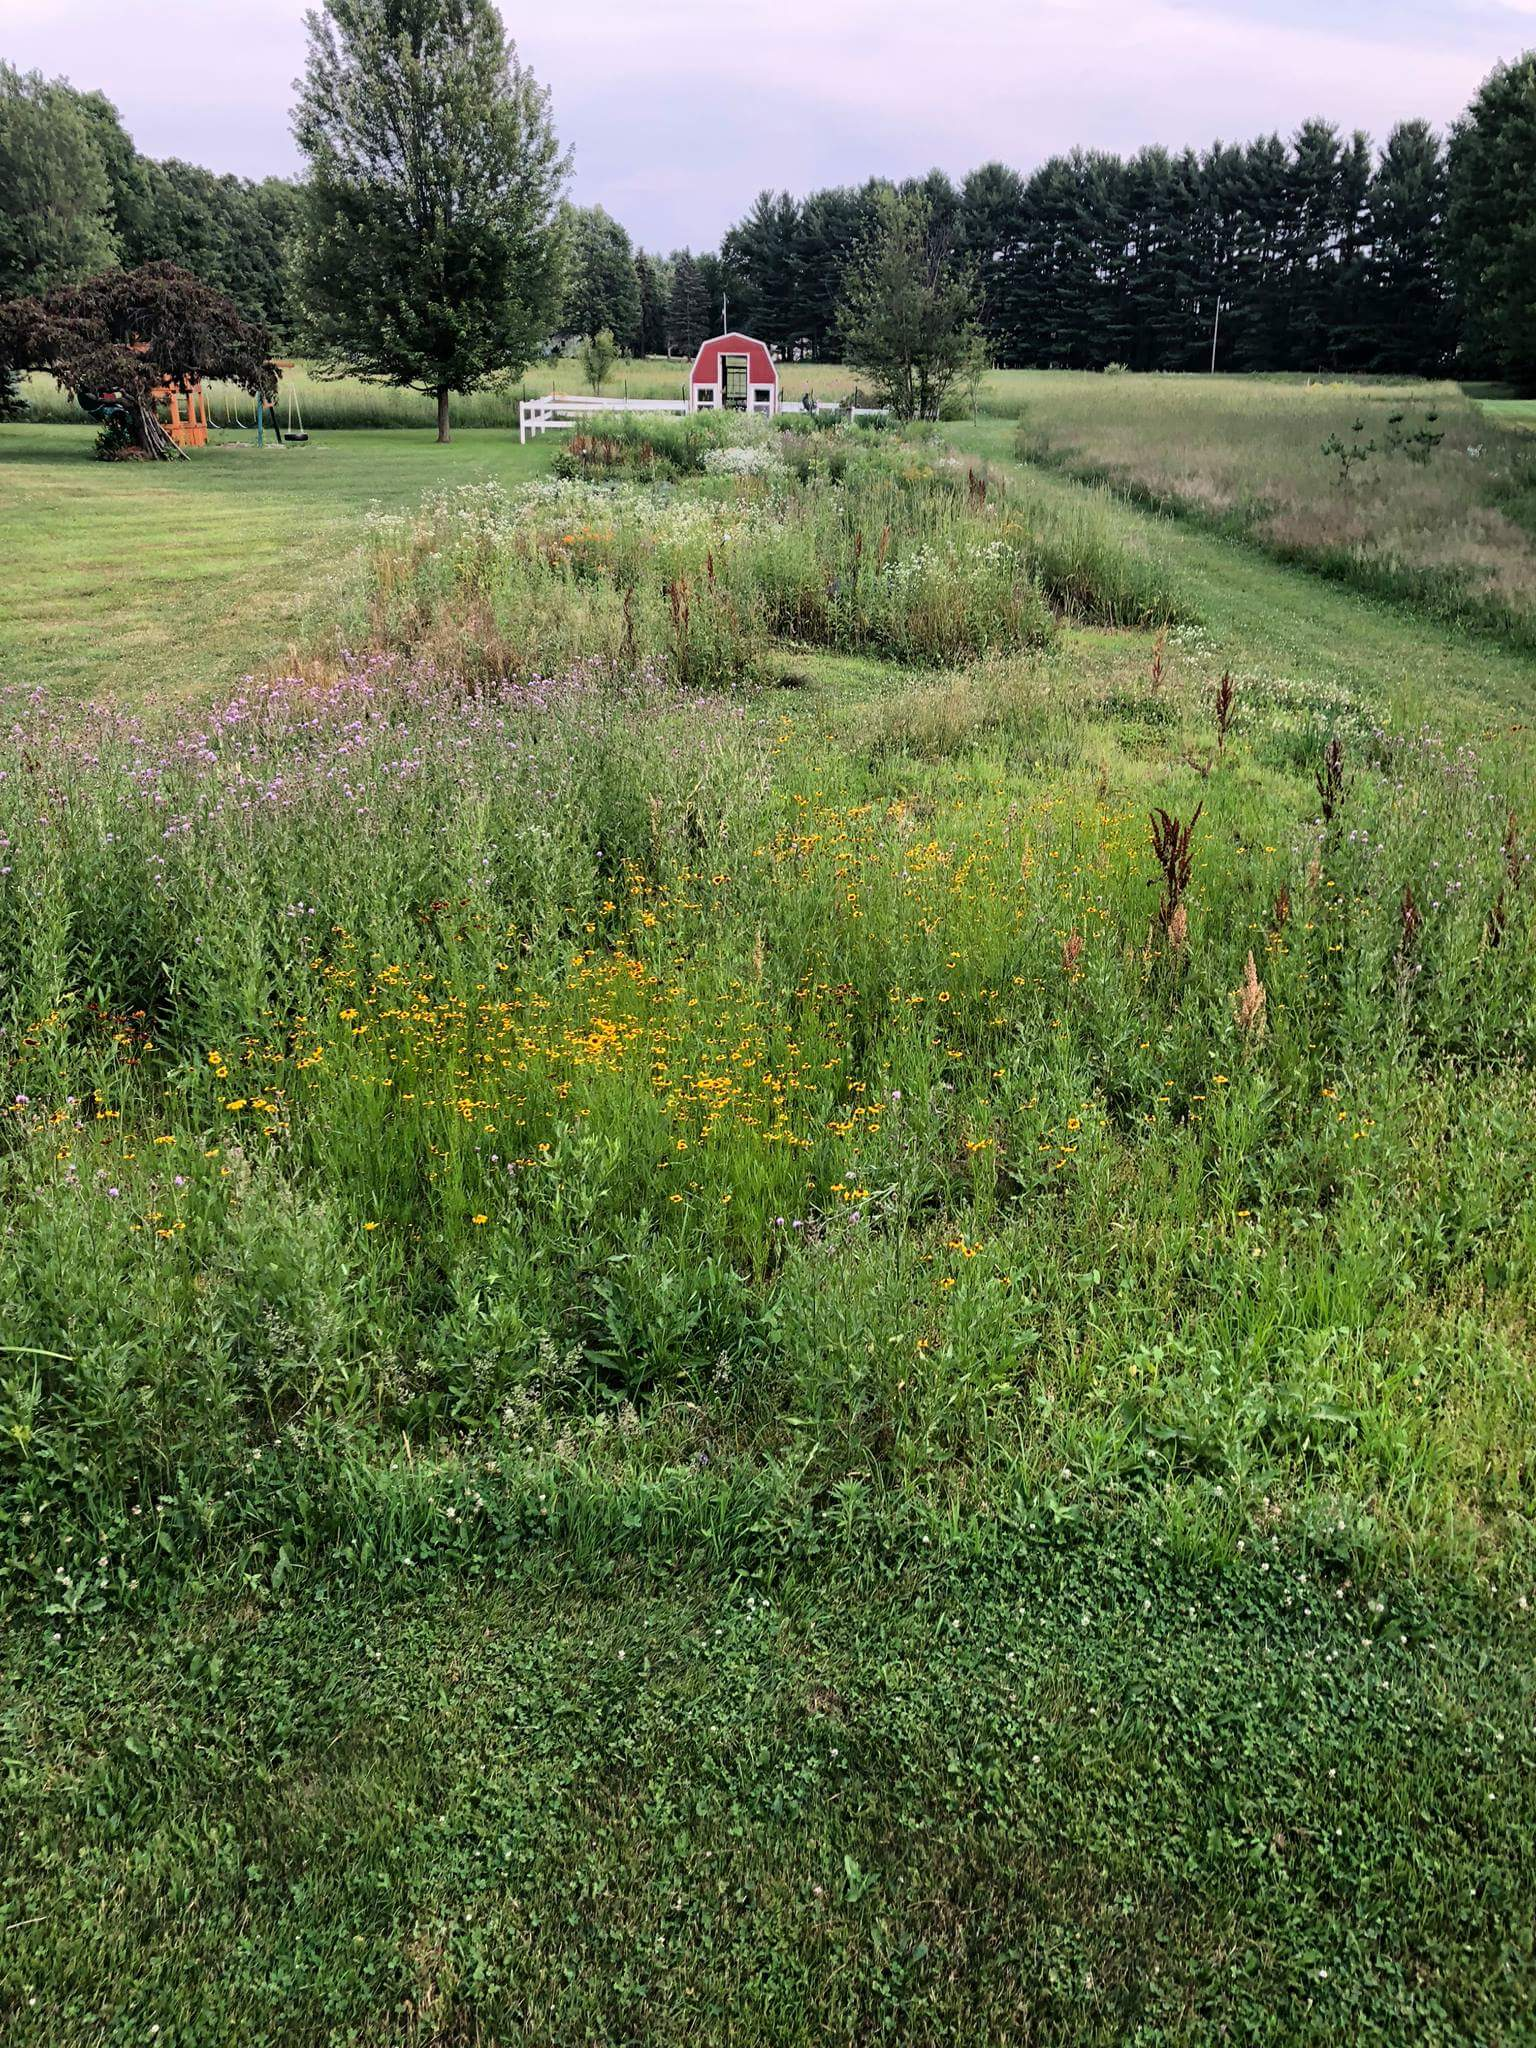 Prairie Walk 8/18/18 (1 - 4 PM)